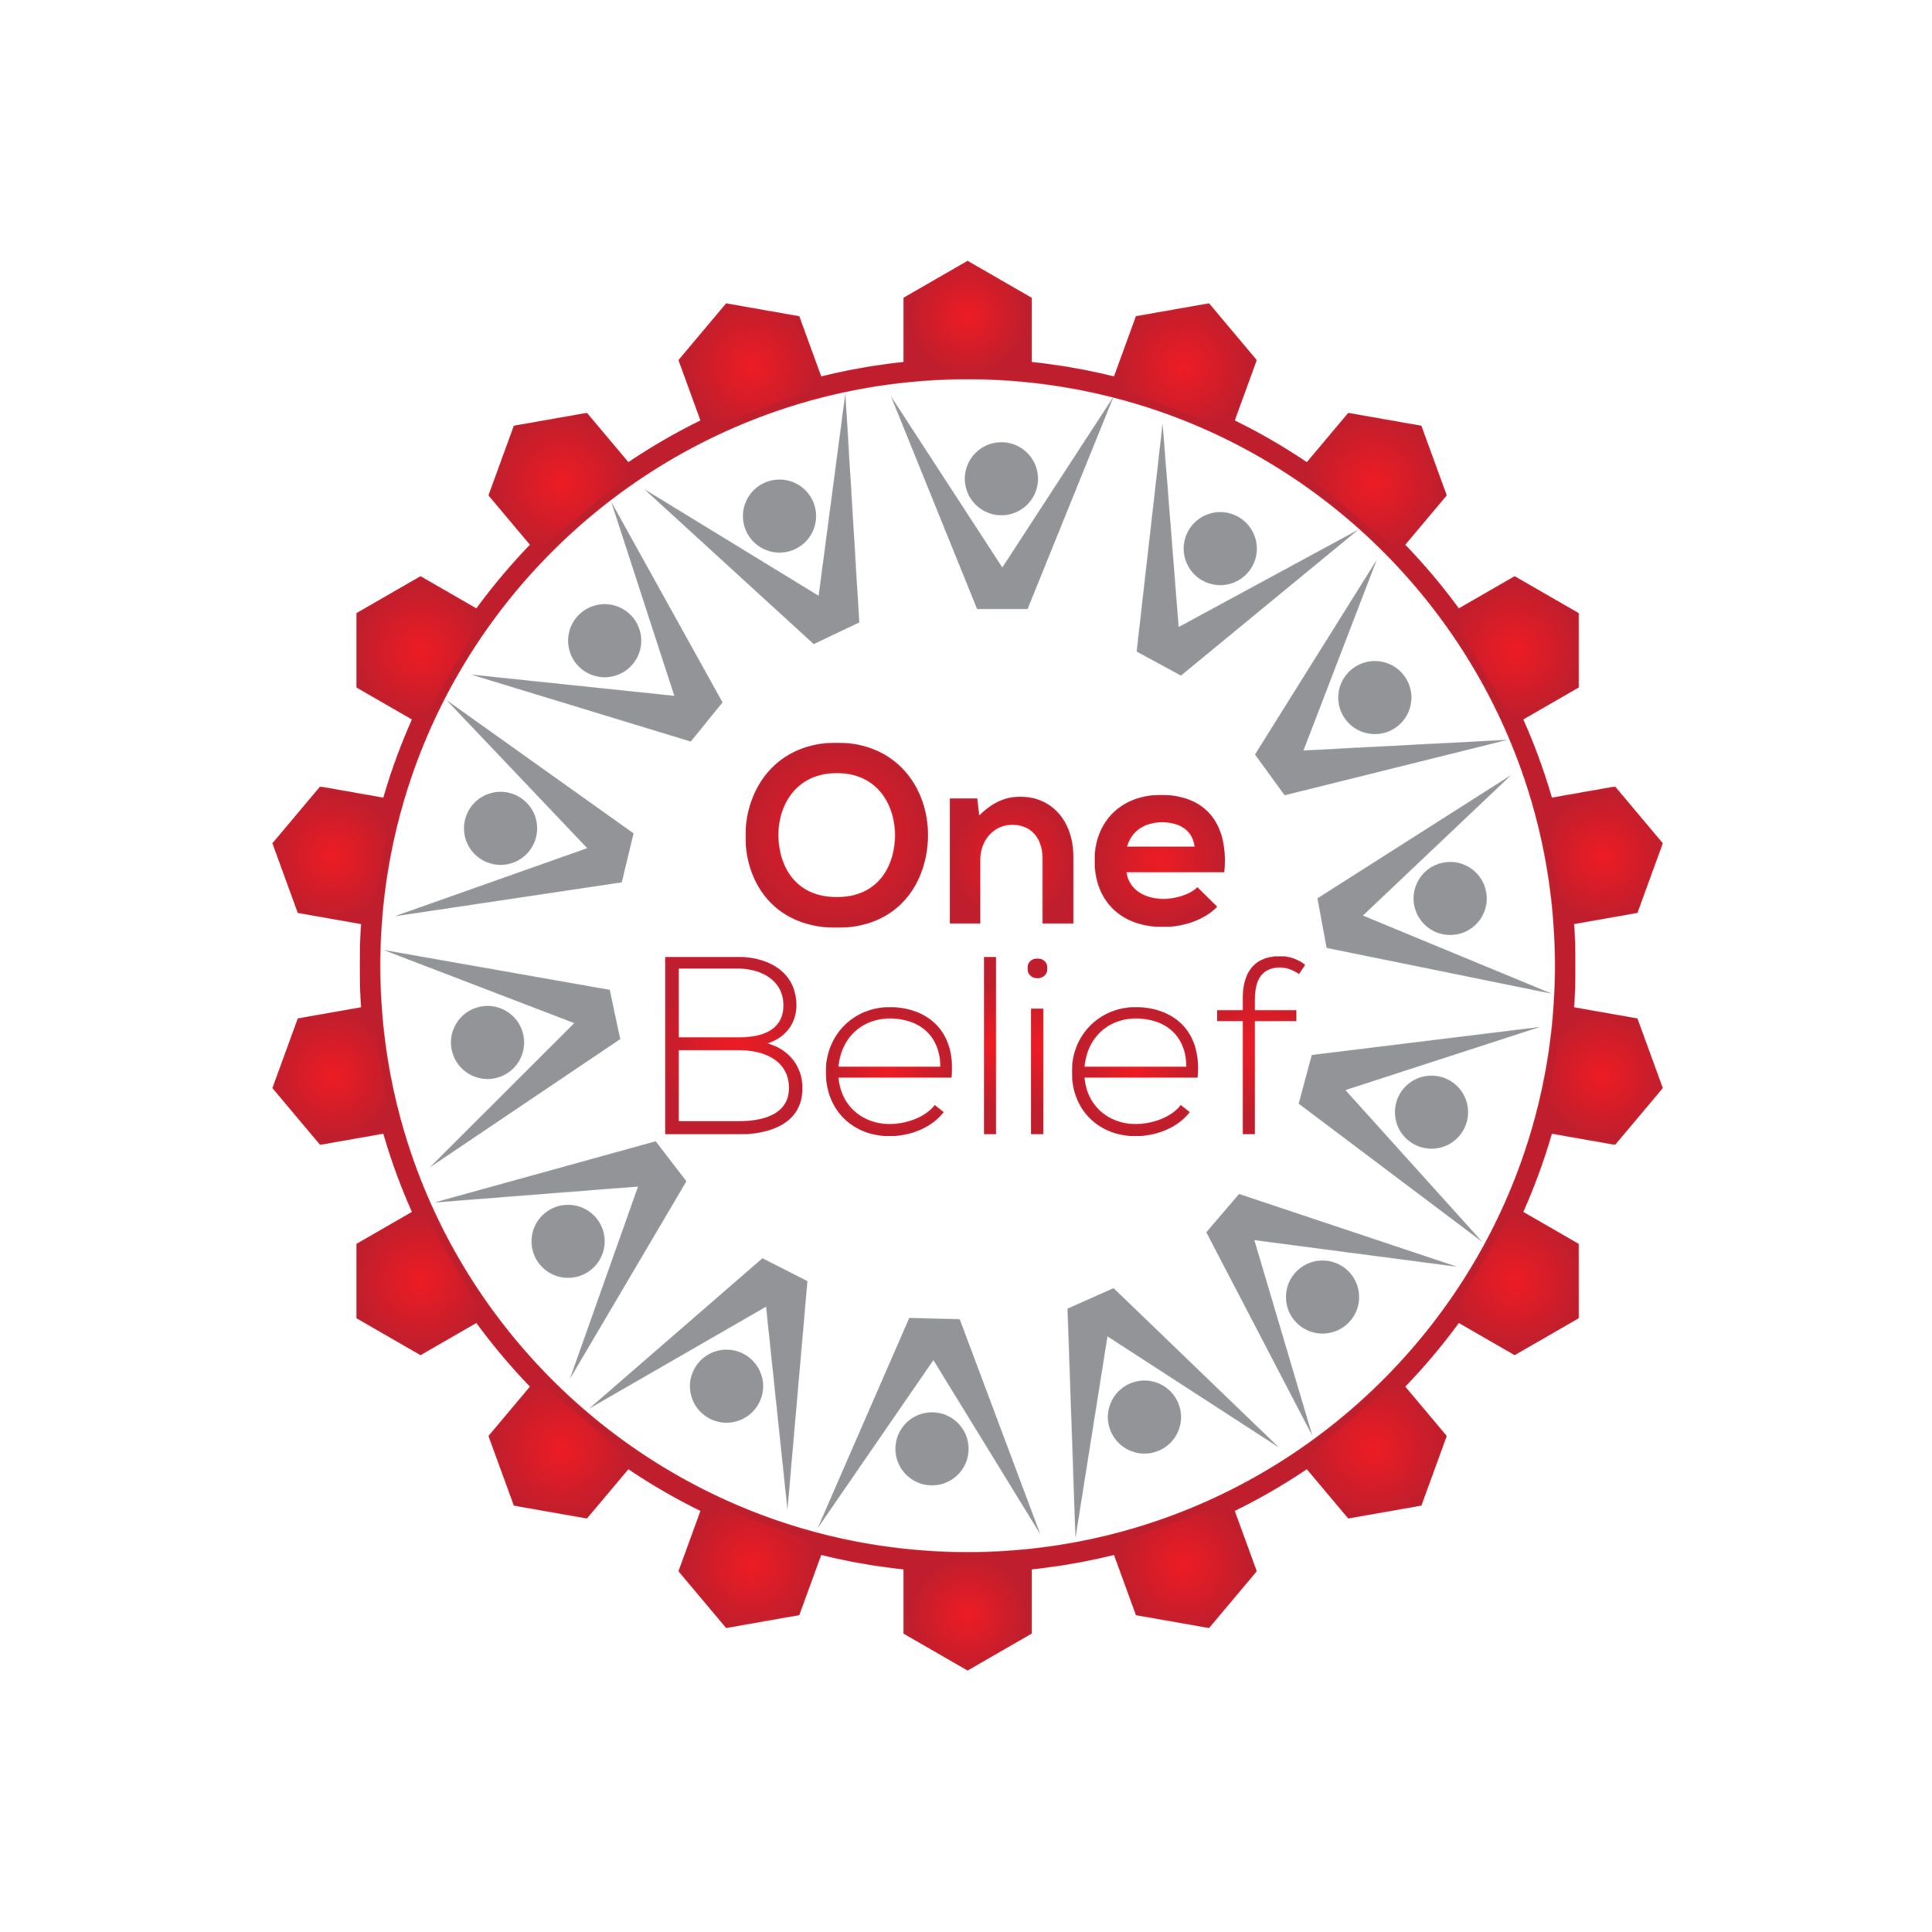 Email 216425_one_belief_logo_HV_02 (6).png